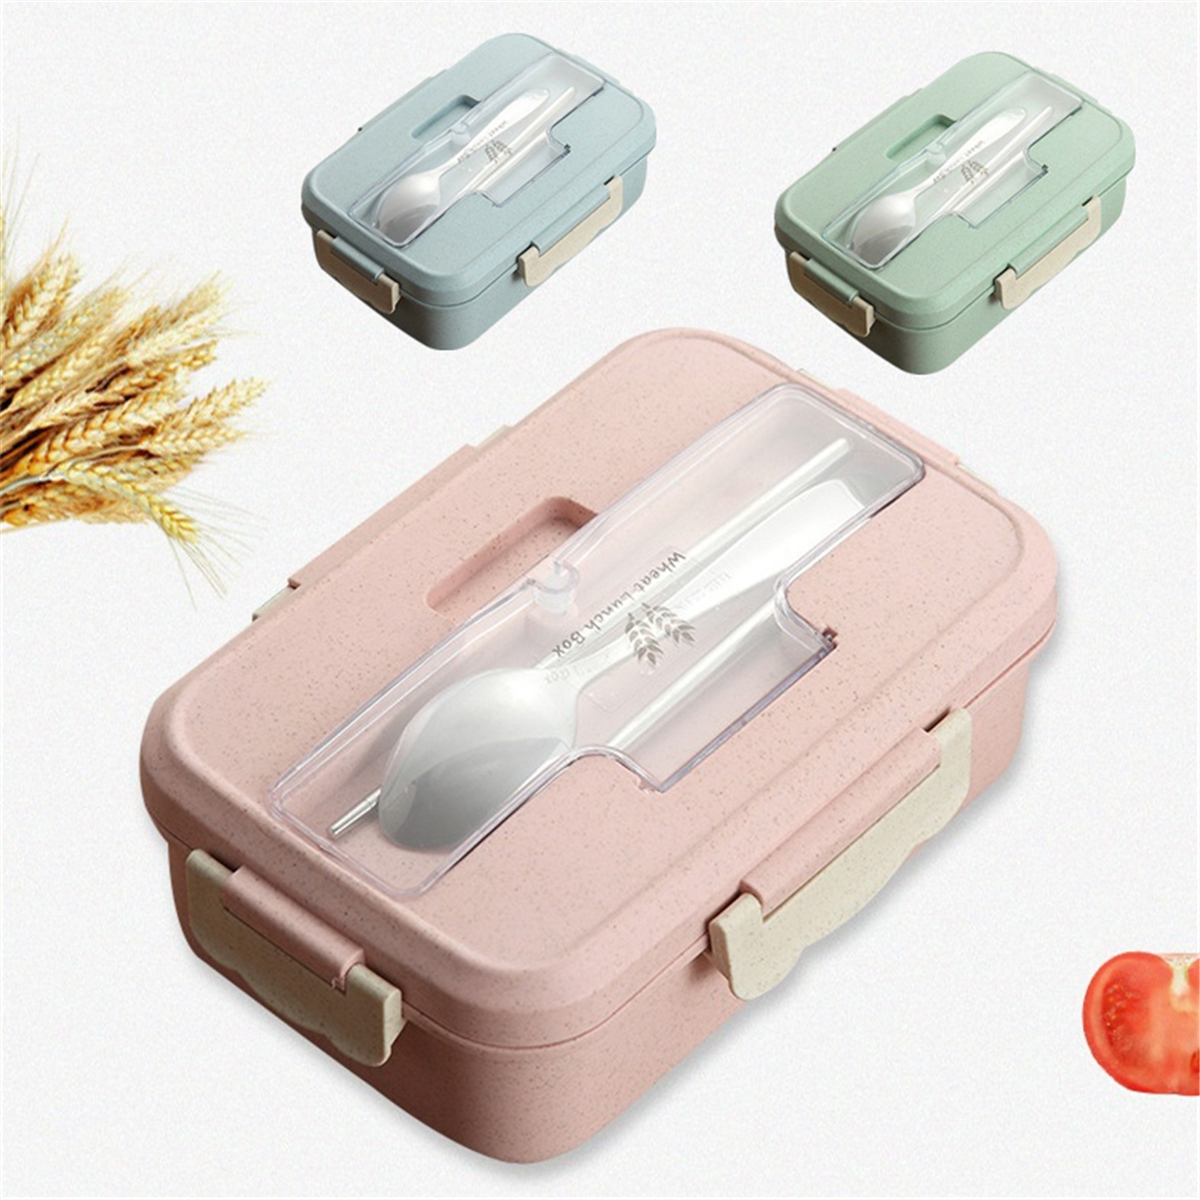 Lunch Box Spoon Chopsticks Case Compartment Food Container Storage Microwave